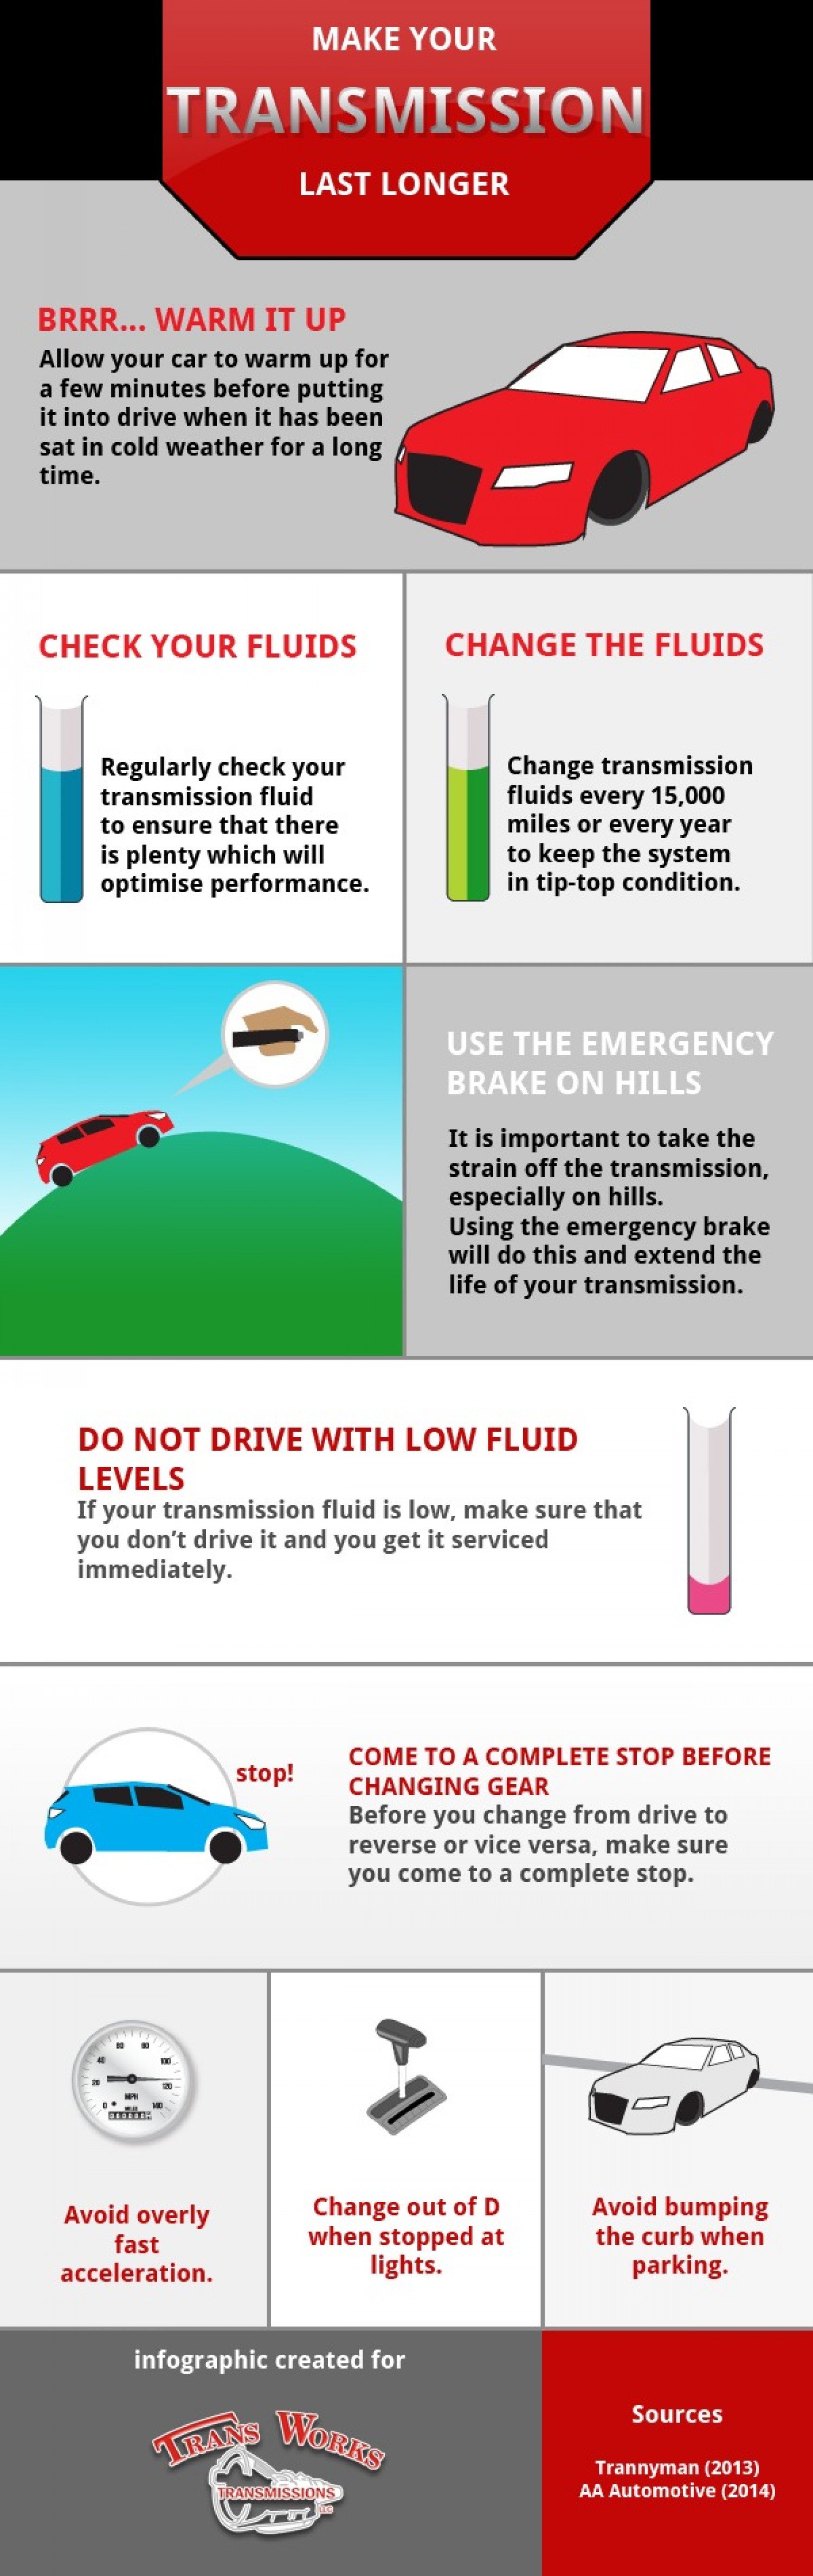 How to Extend the Life of Your Transmission Infographic